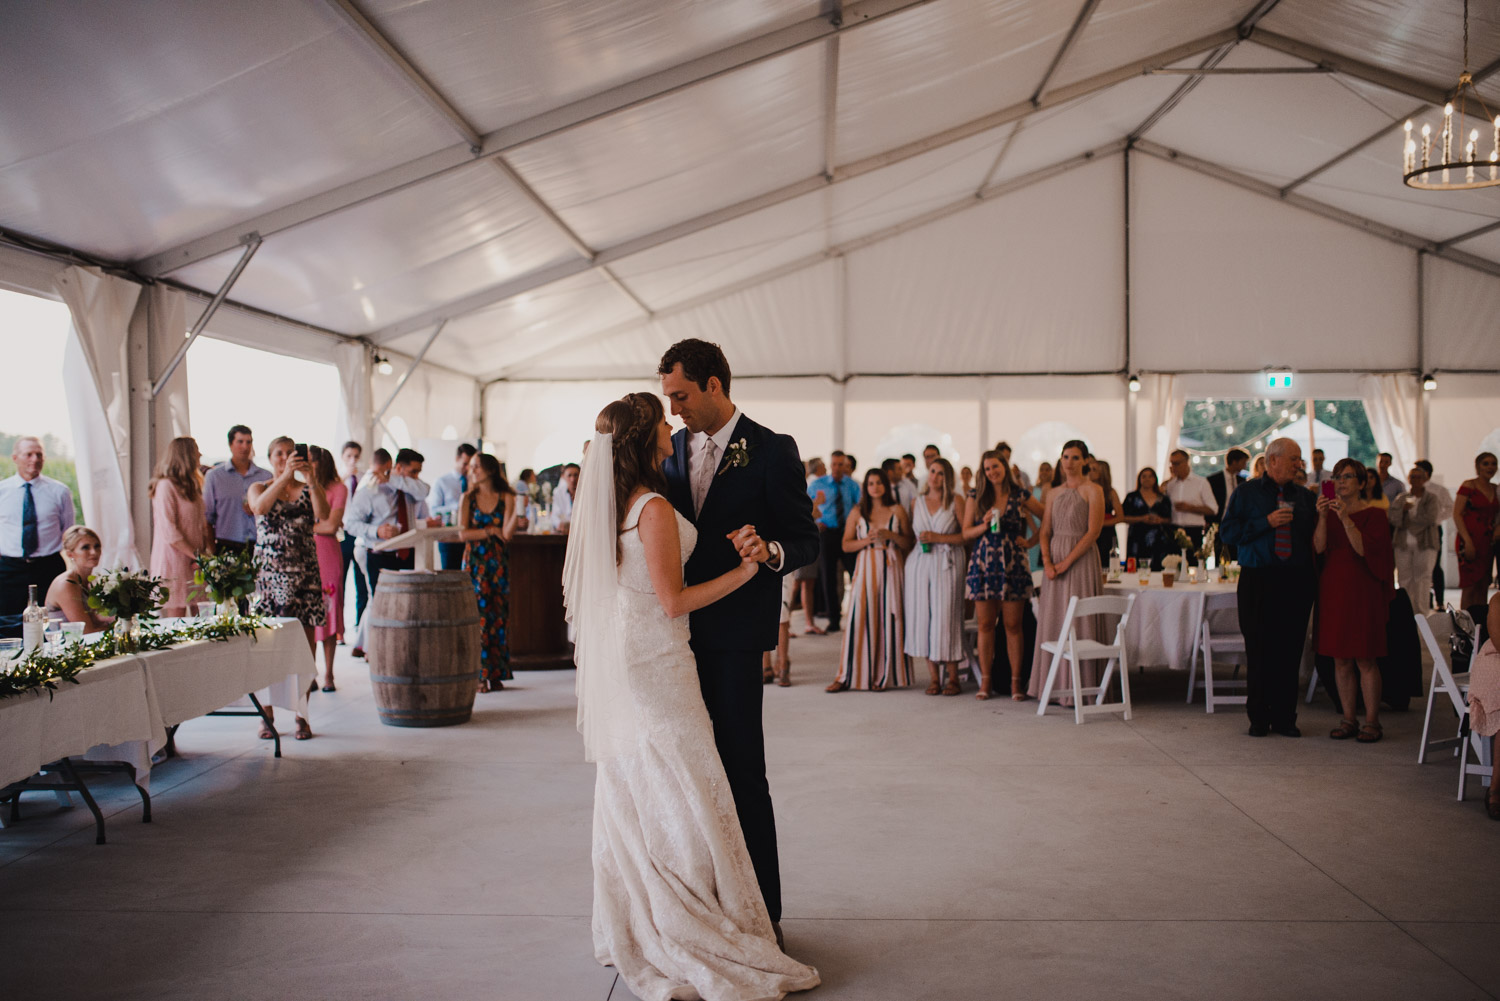 The bride and groom share their first dance as a married couple on the dancefloor